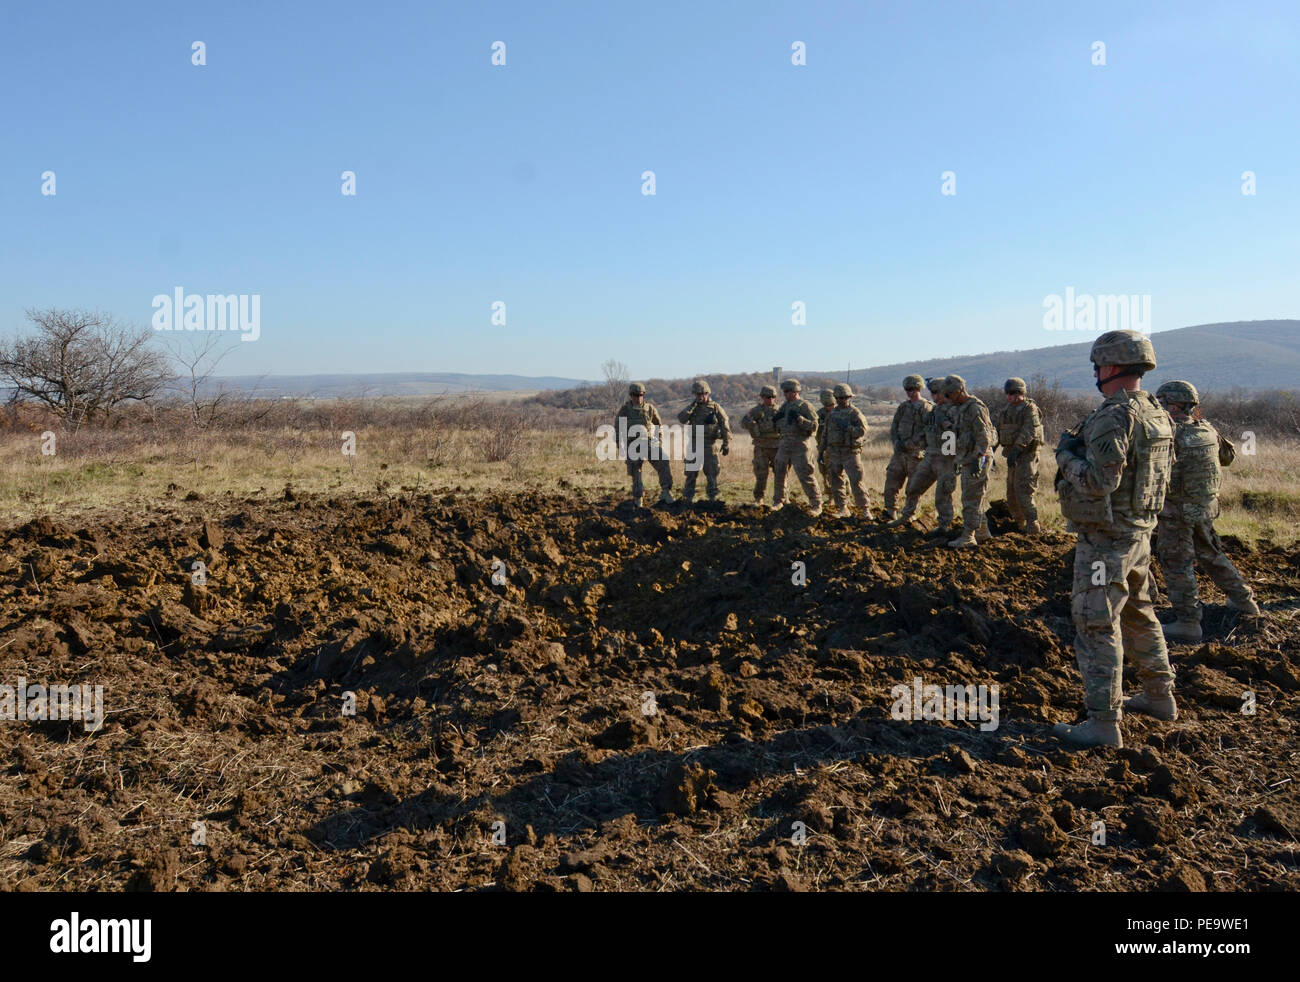 Soldiers of 1st Armored Brigade Combat Team, attached to 5th Squadron, 7th Cavalry Regiment, 3rd Infantry Division, stationed at Fort Stewart, Ga., rally around the crater they just made with 100 pounds of explosives during a field training exercise in support of Operation Atlantic Resolve at Novo Selo Training Center, Bulgaria, Nov. 19, 2015. Cratering charges are used in order to quickly create an obstacle in a tactical scenario and to deny the enemy freedom of maneuver. (U.S. Army photo by Staff Sgt. Steven M. Colvin/Released) - Stock Image